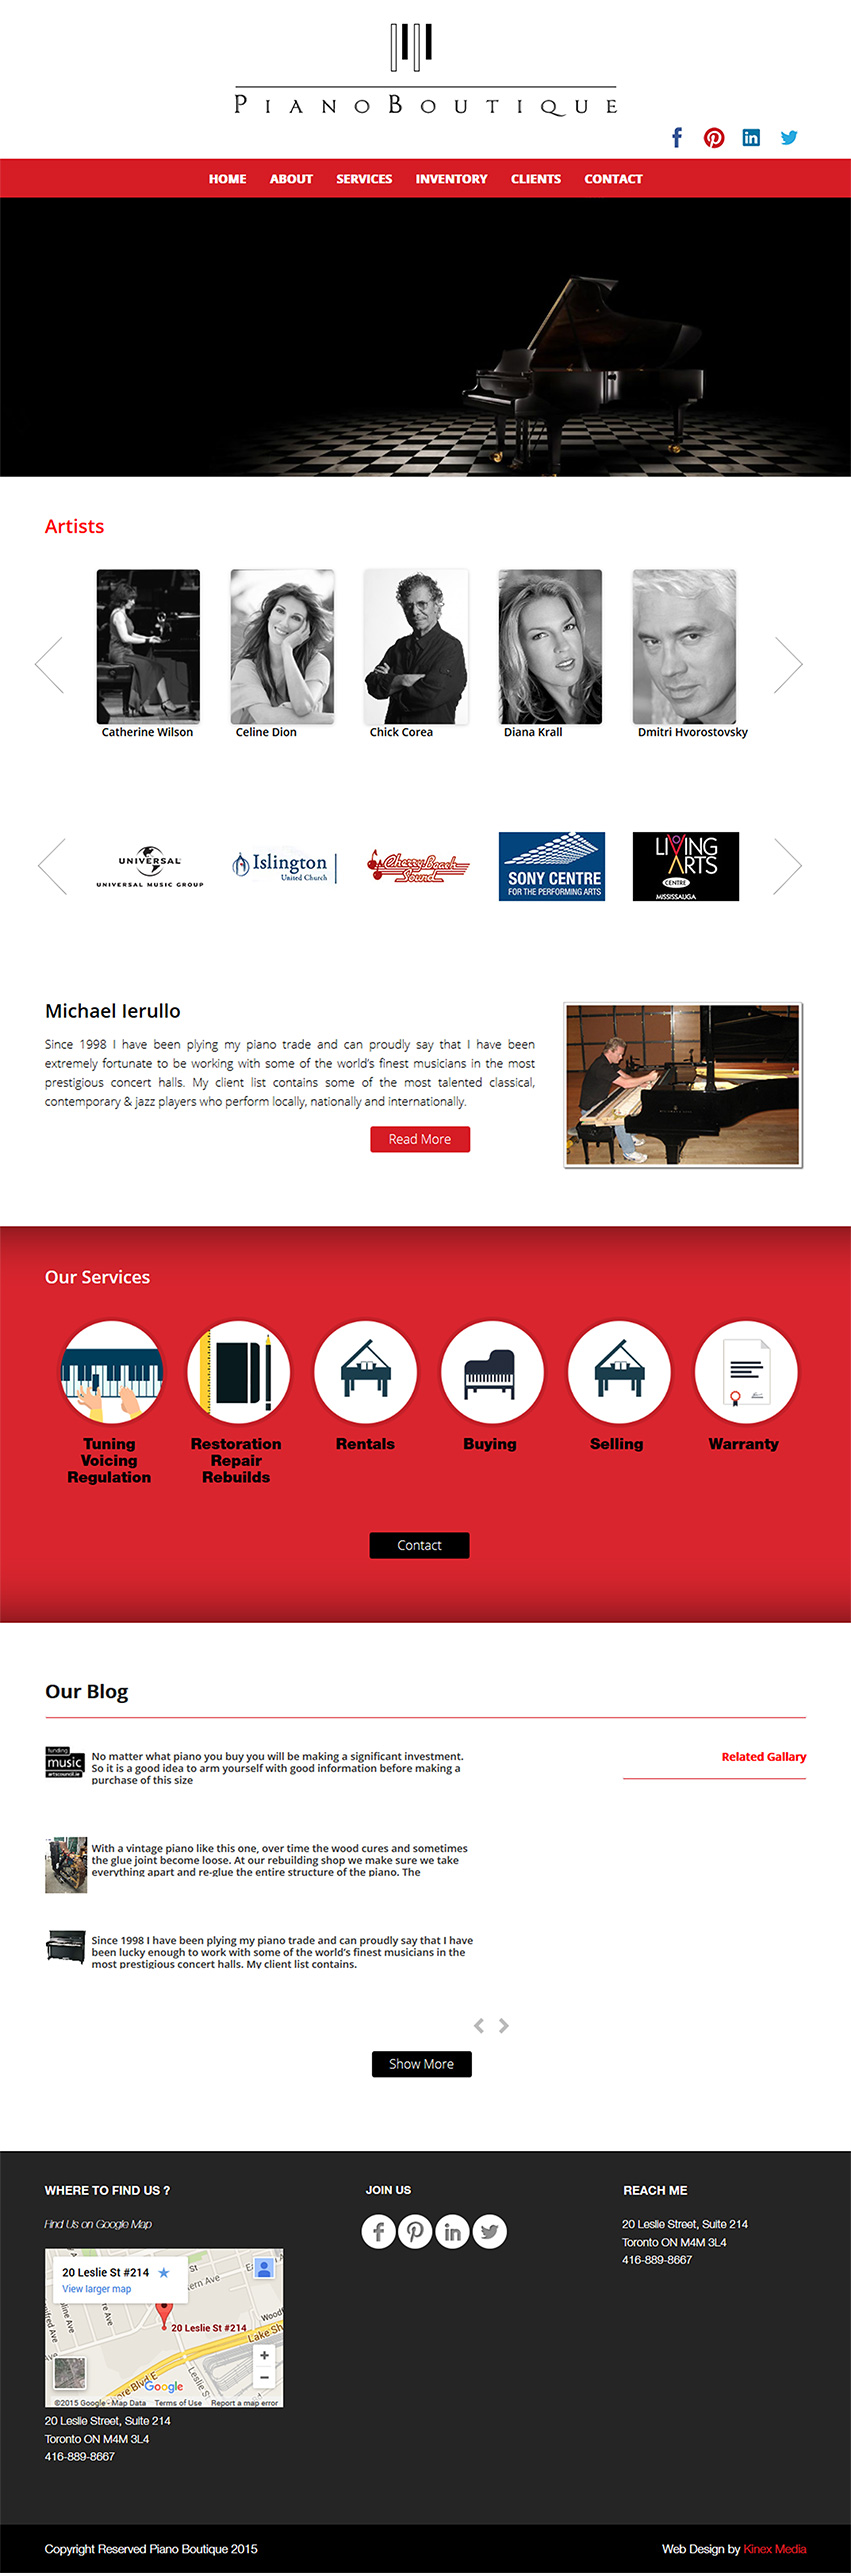 The Piano Boutique